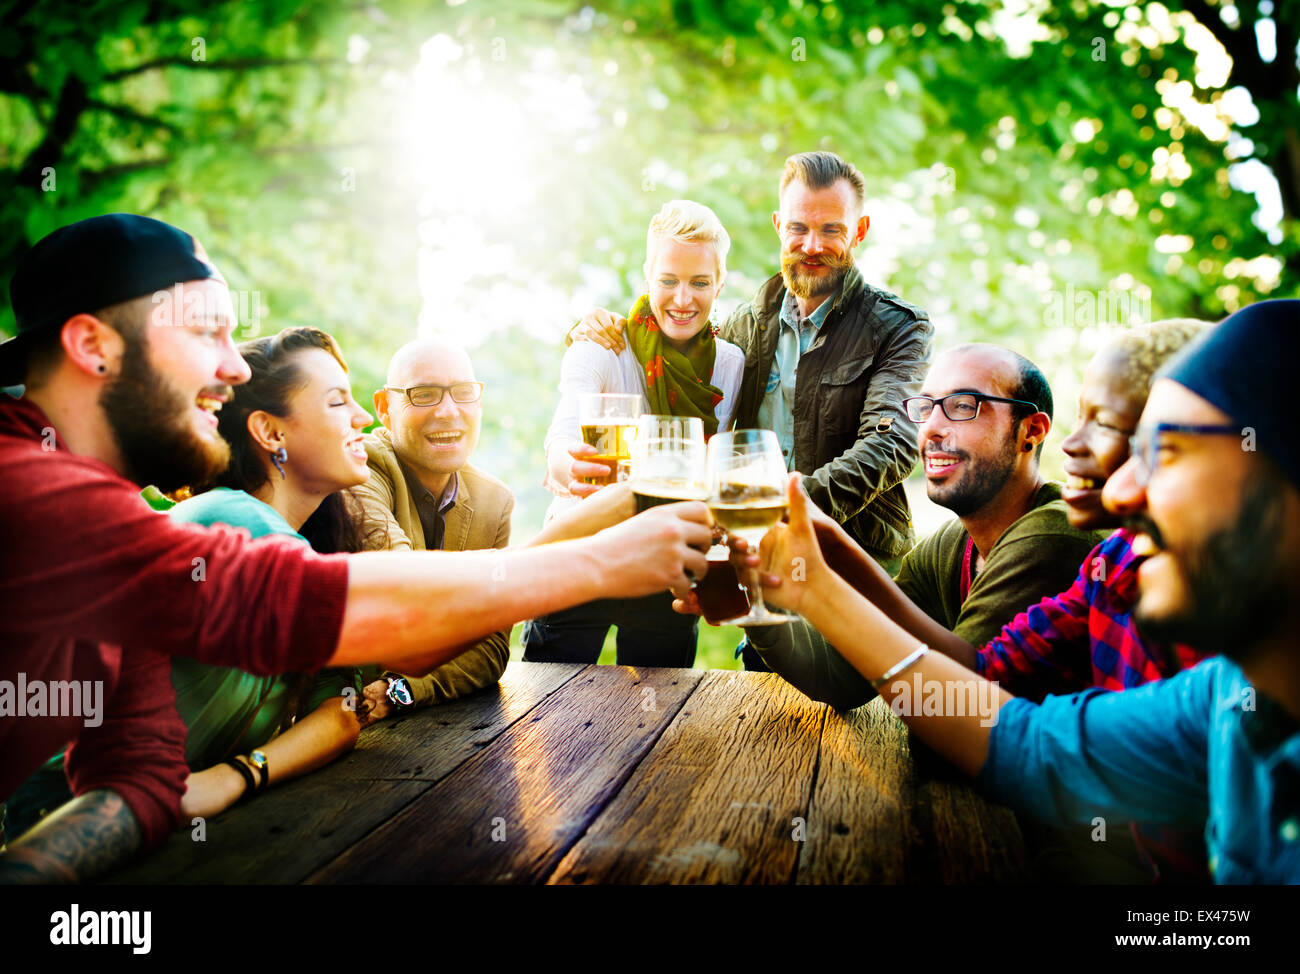 Friends Party Outdoors Celebration Happiness Concept - Stock Image